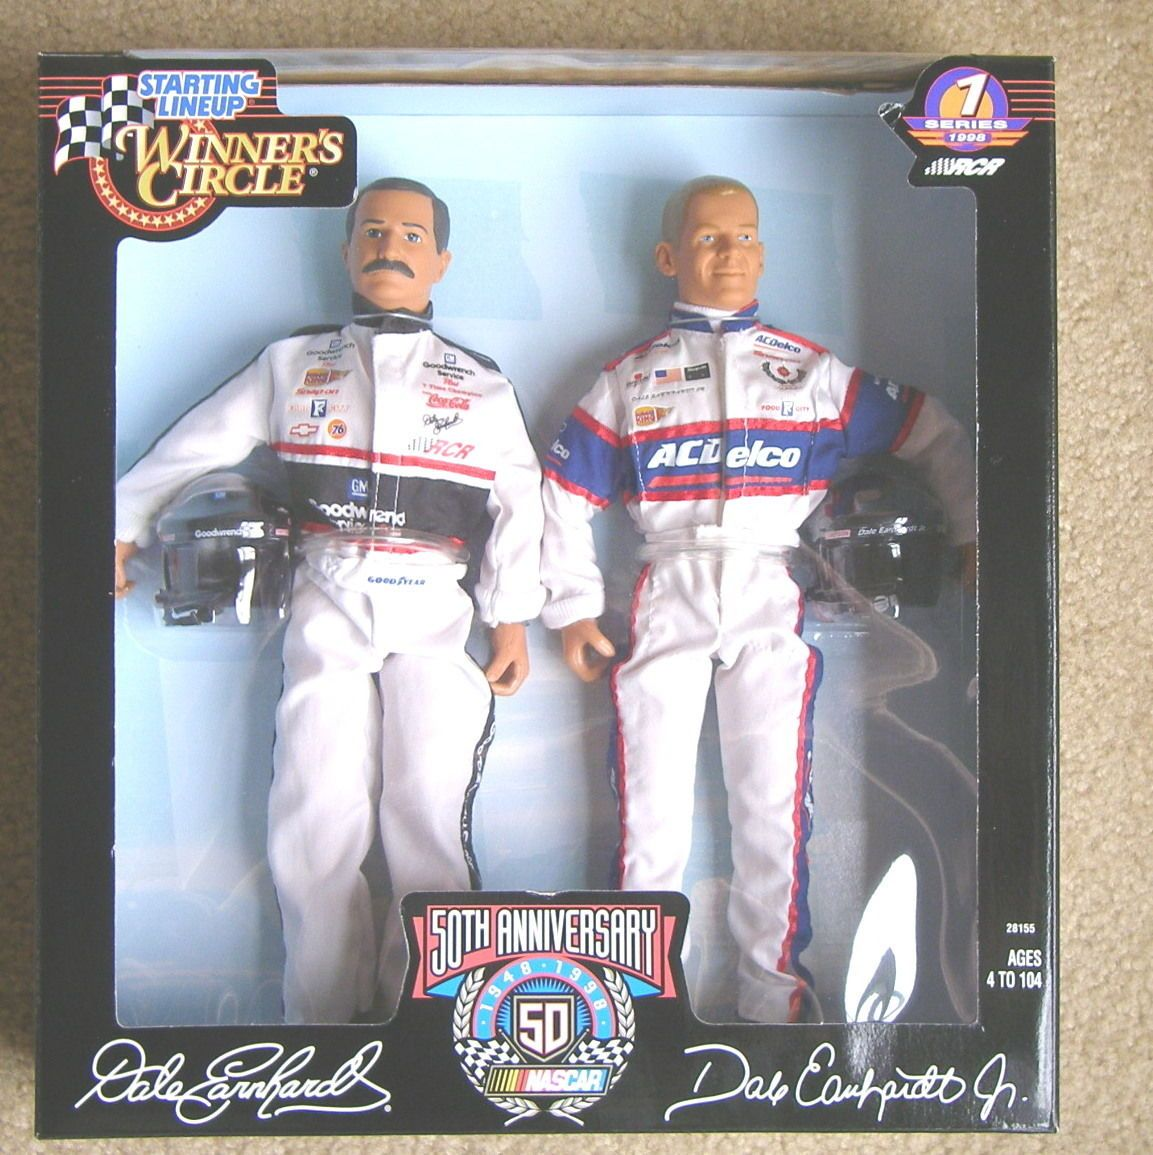 Starting Lineup, Winner's Circle Dale Earnhardt and Dale